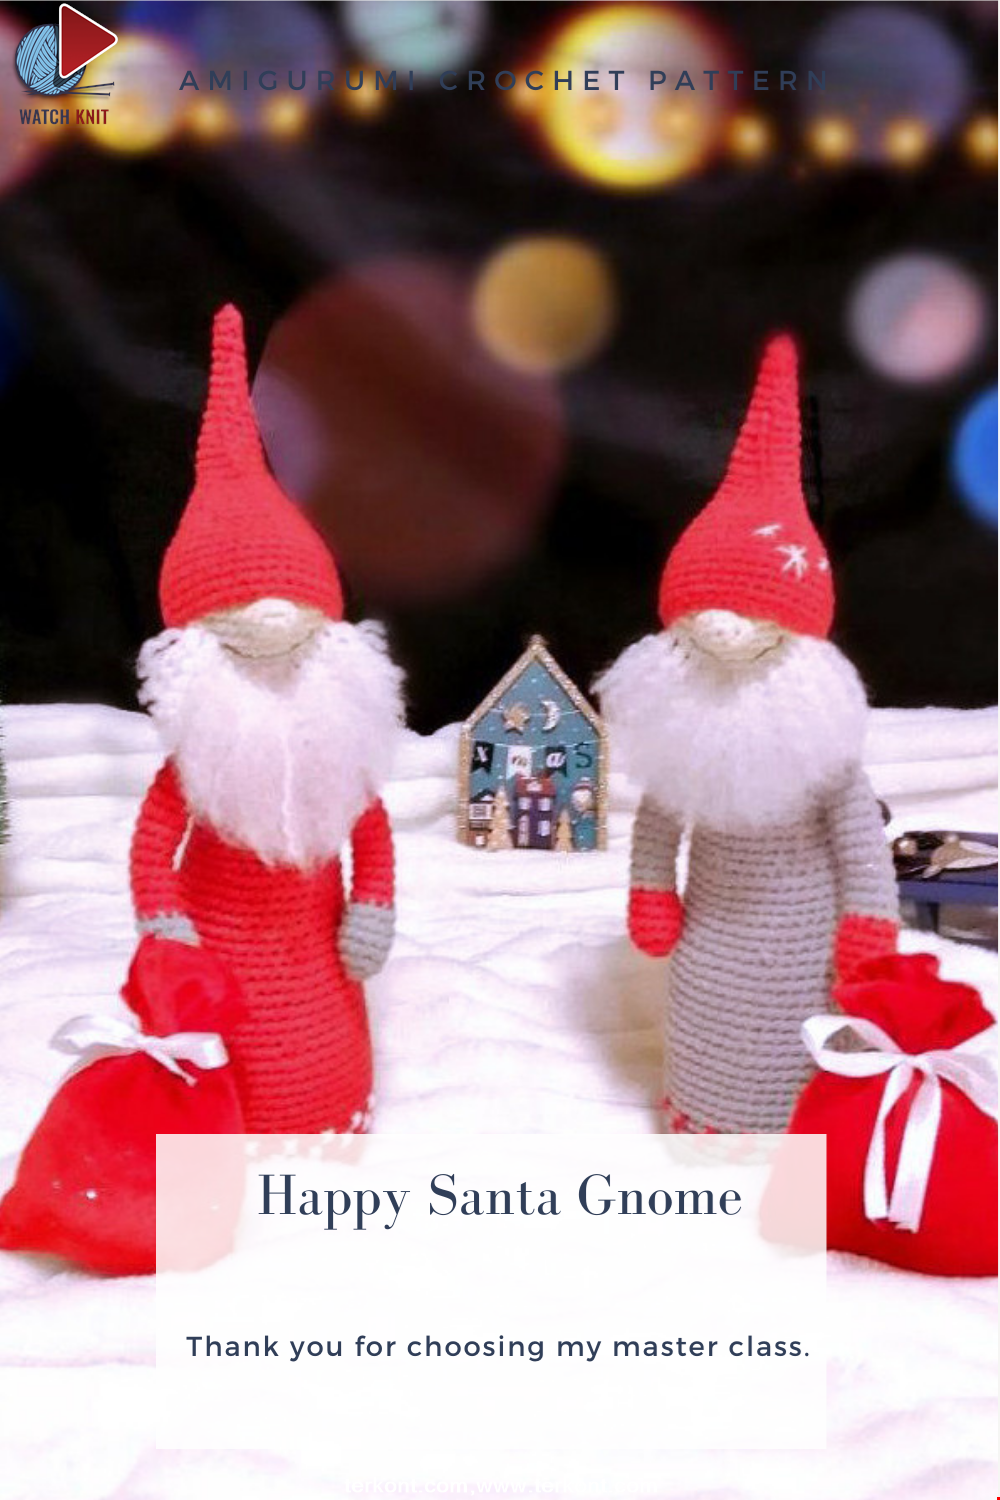 Amigurumi Happy Santa Gnome Crochet Pattern